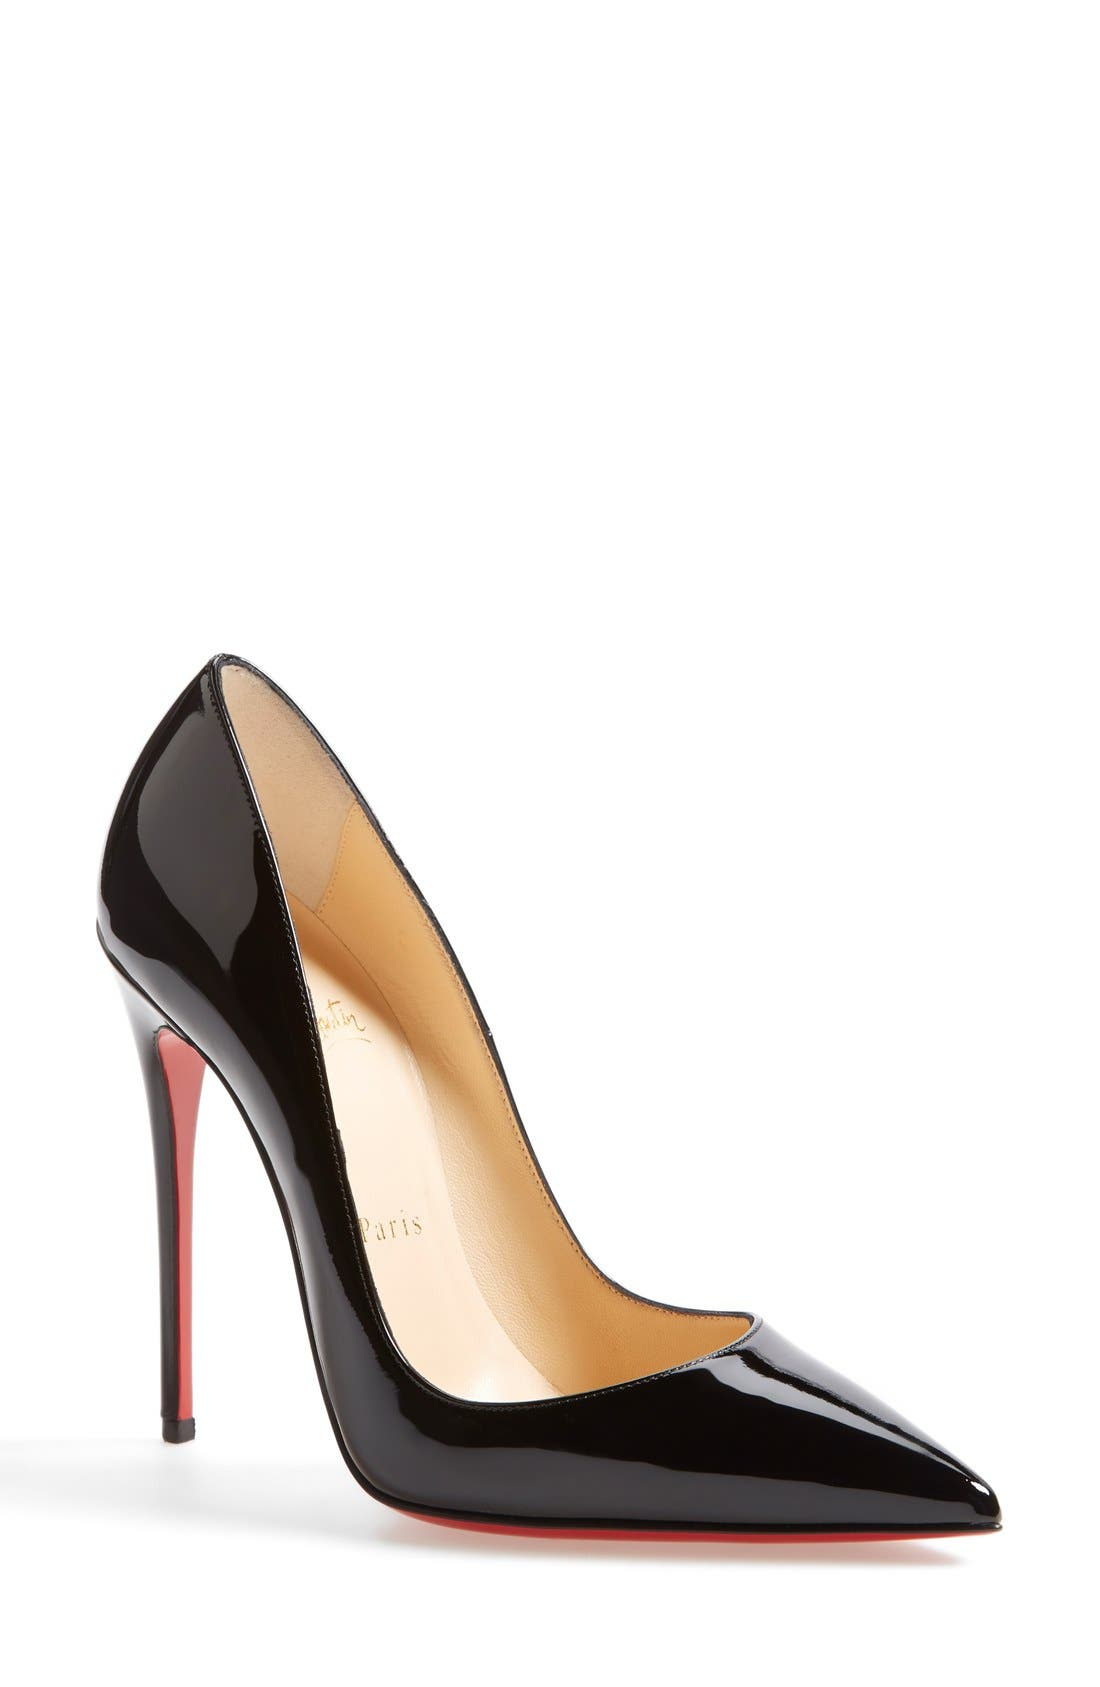 shoes for petite women